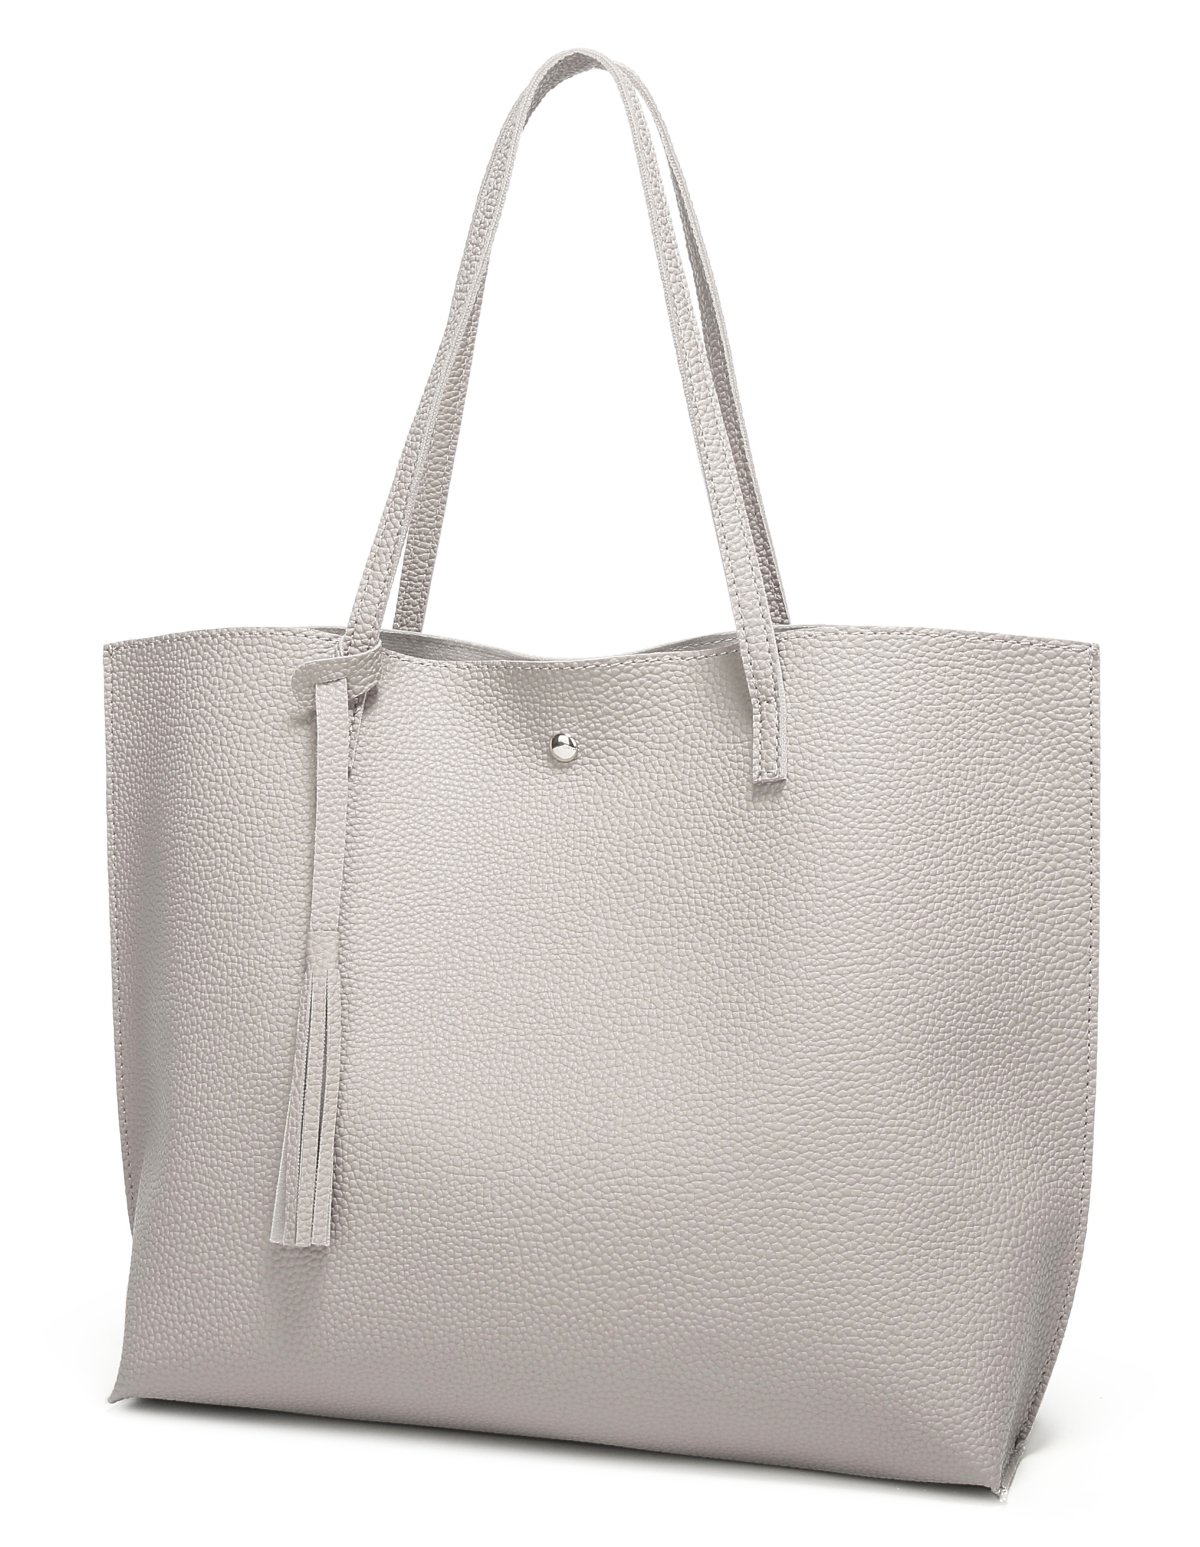 Women's Soft Leather Tote Shoulder Bag from Dreubea, Big Capacity Tassel Handbag Grey